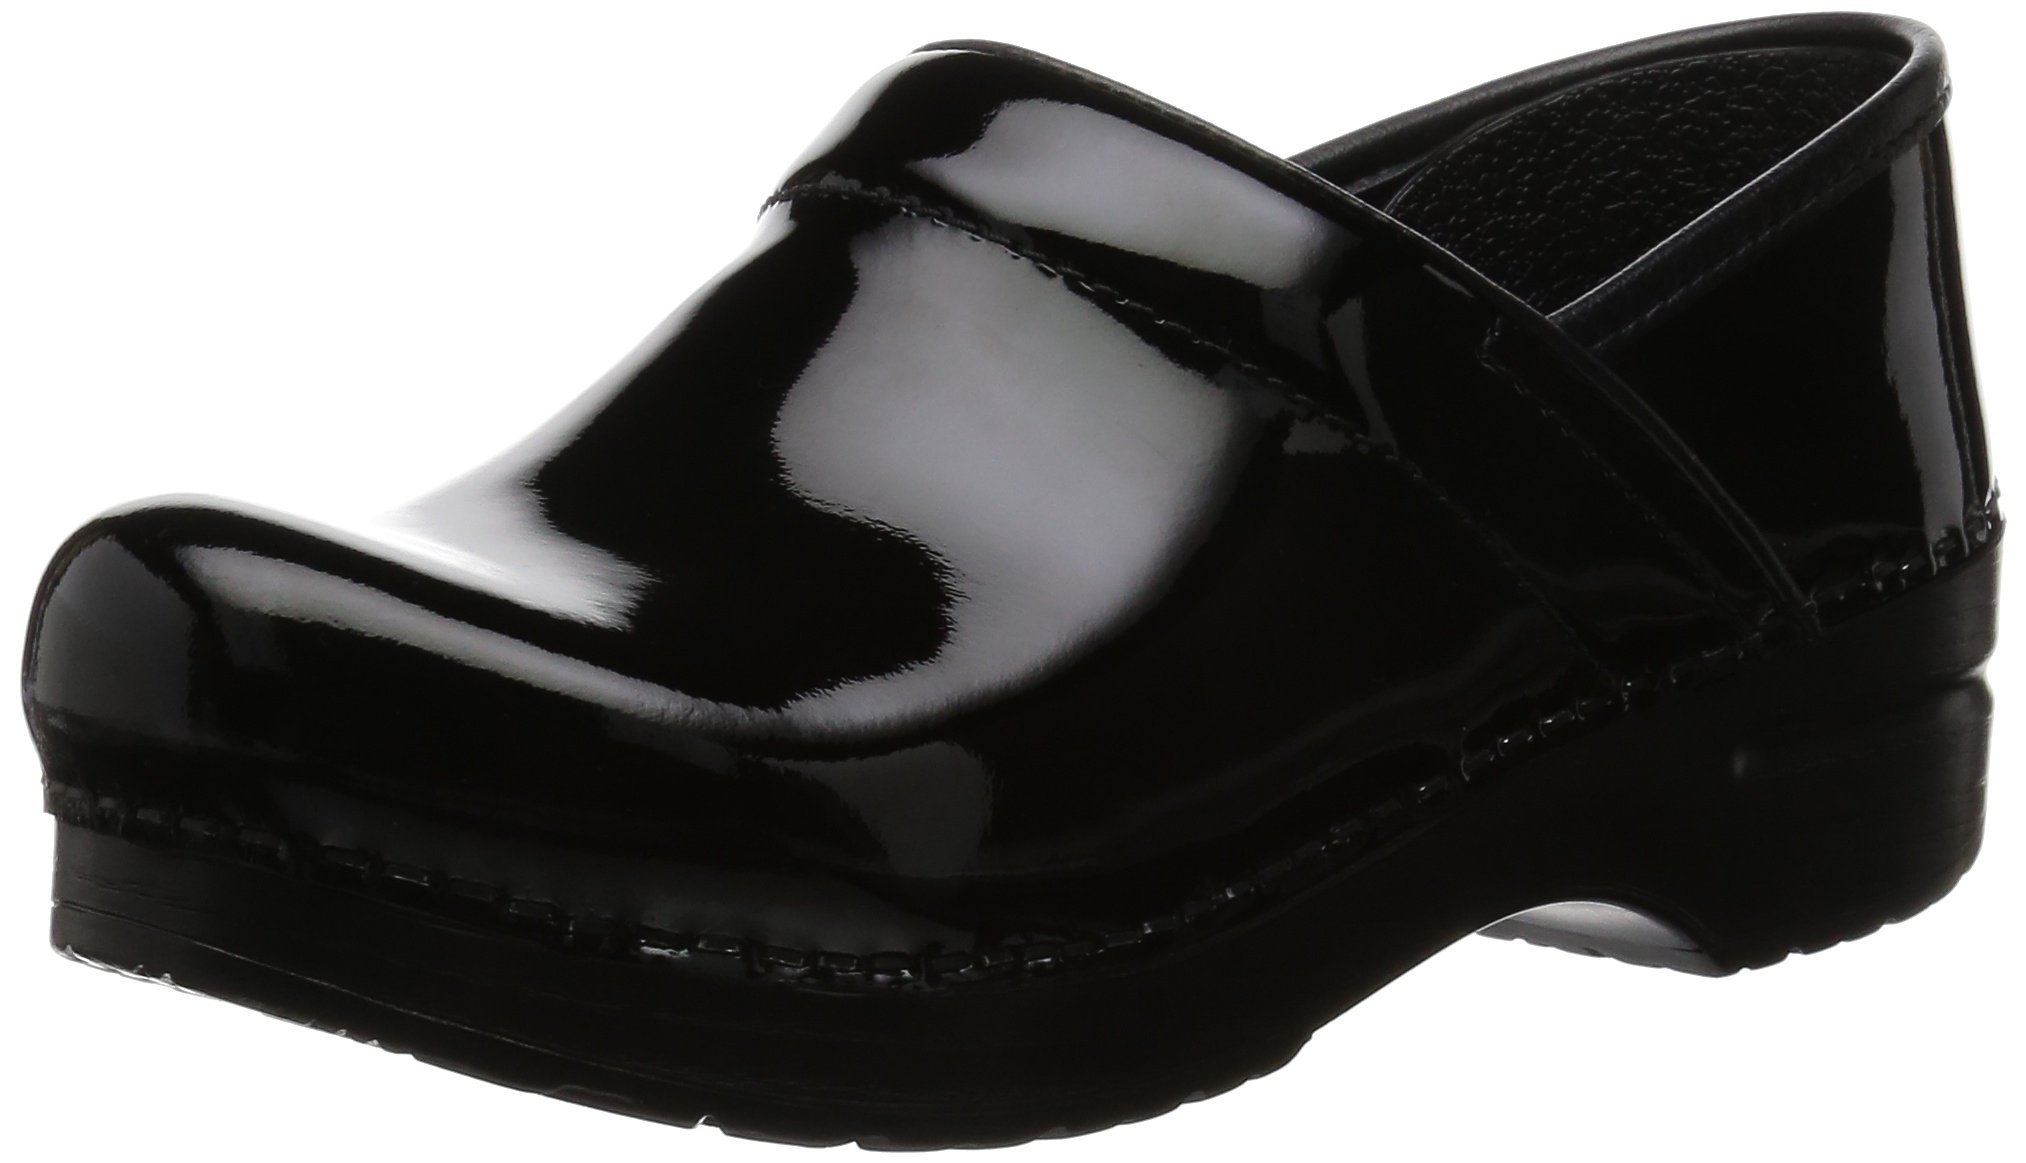 Dansko Women's Professional Patent Leather Clog,Black Patent,36 EU / 5.5-6 B(M) US